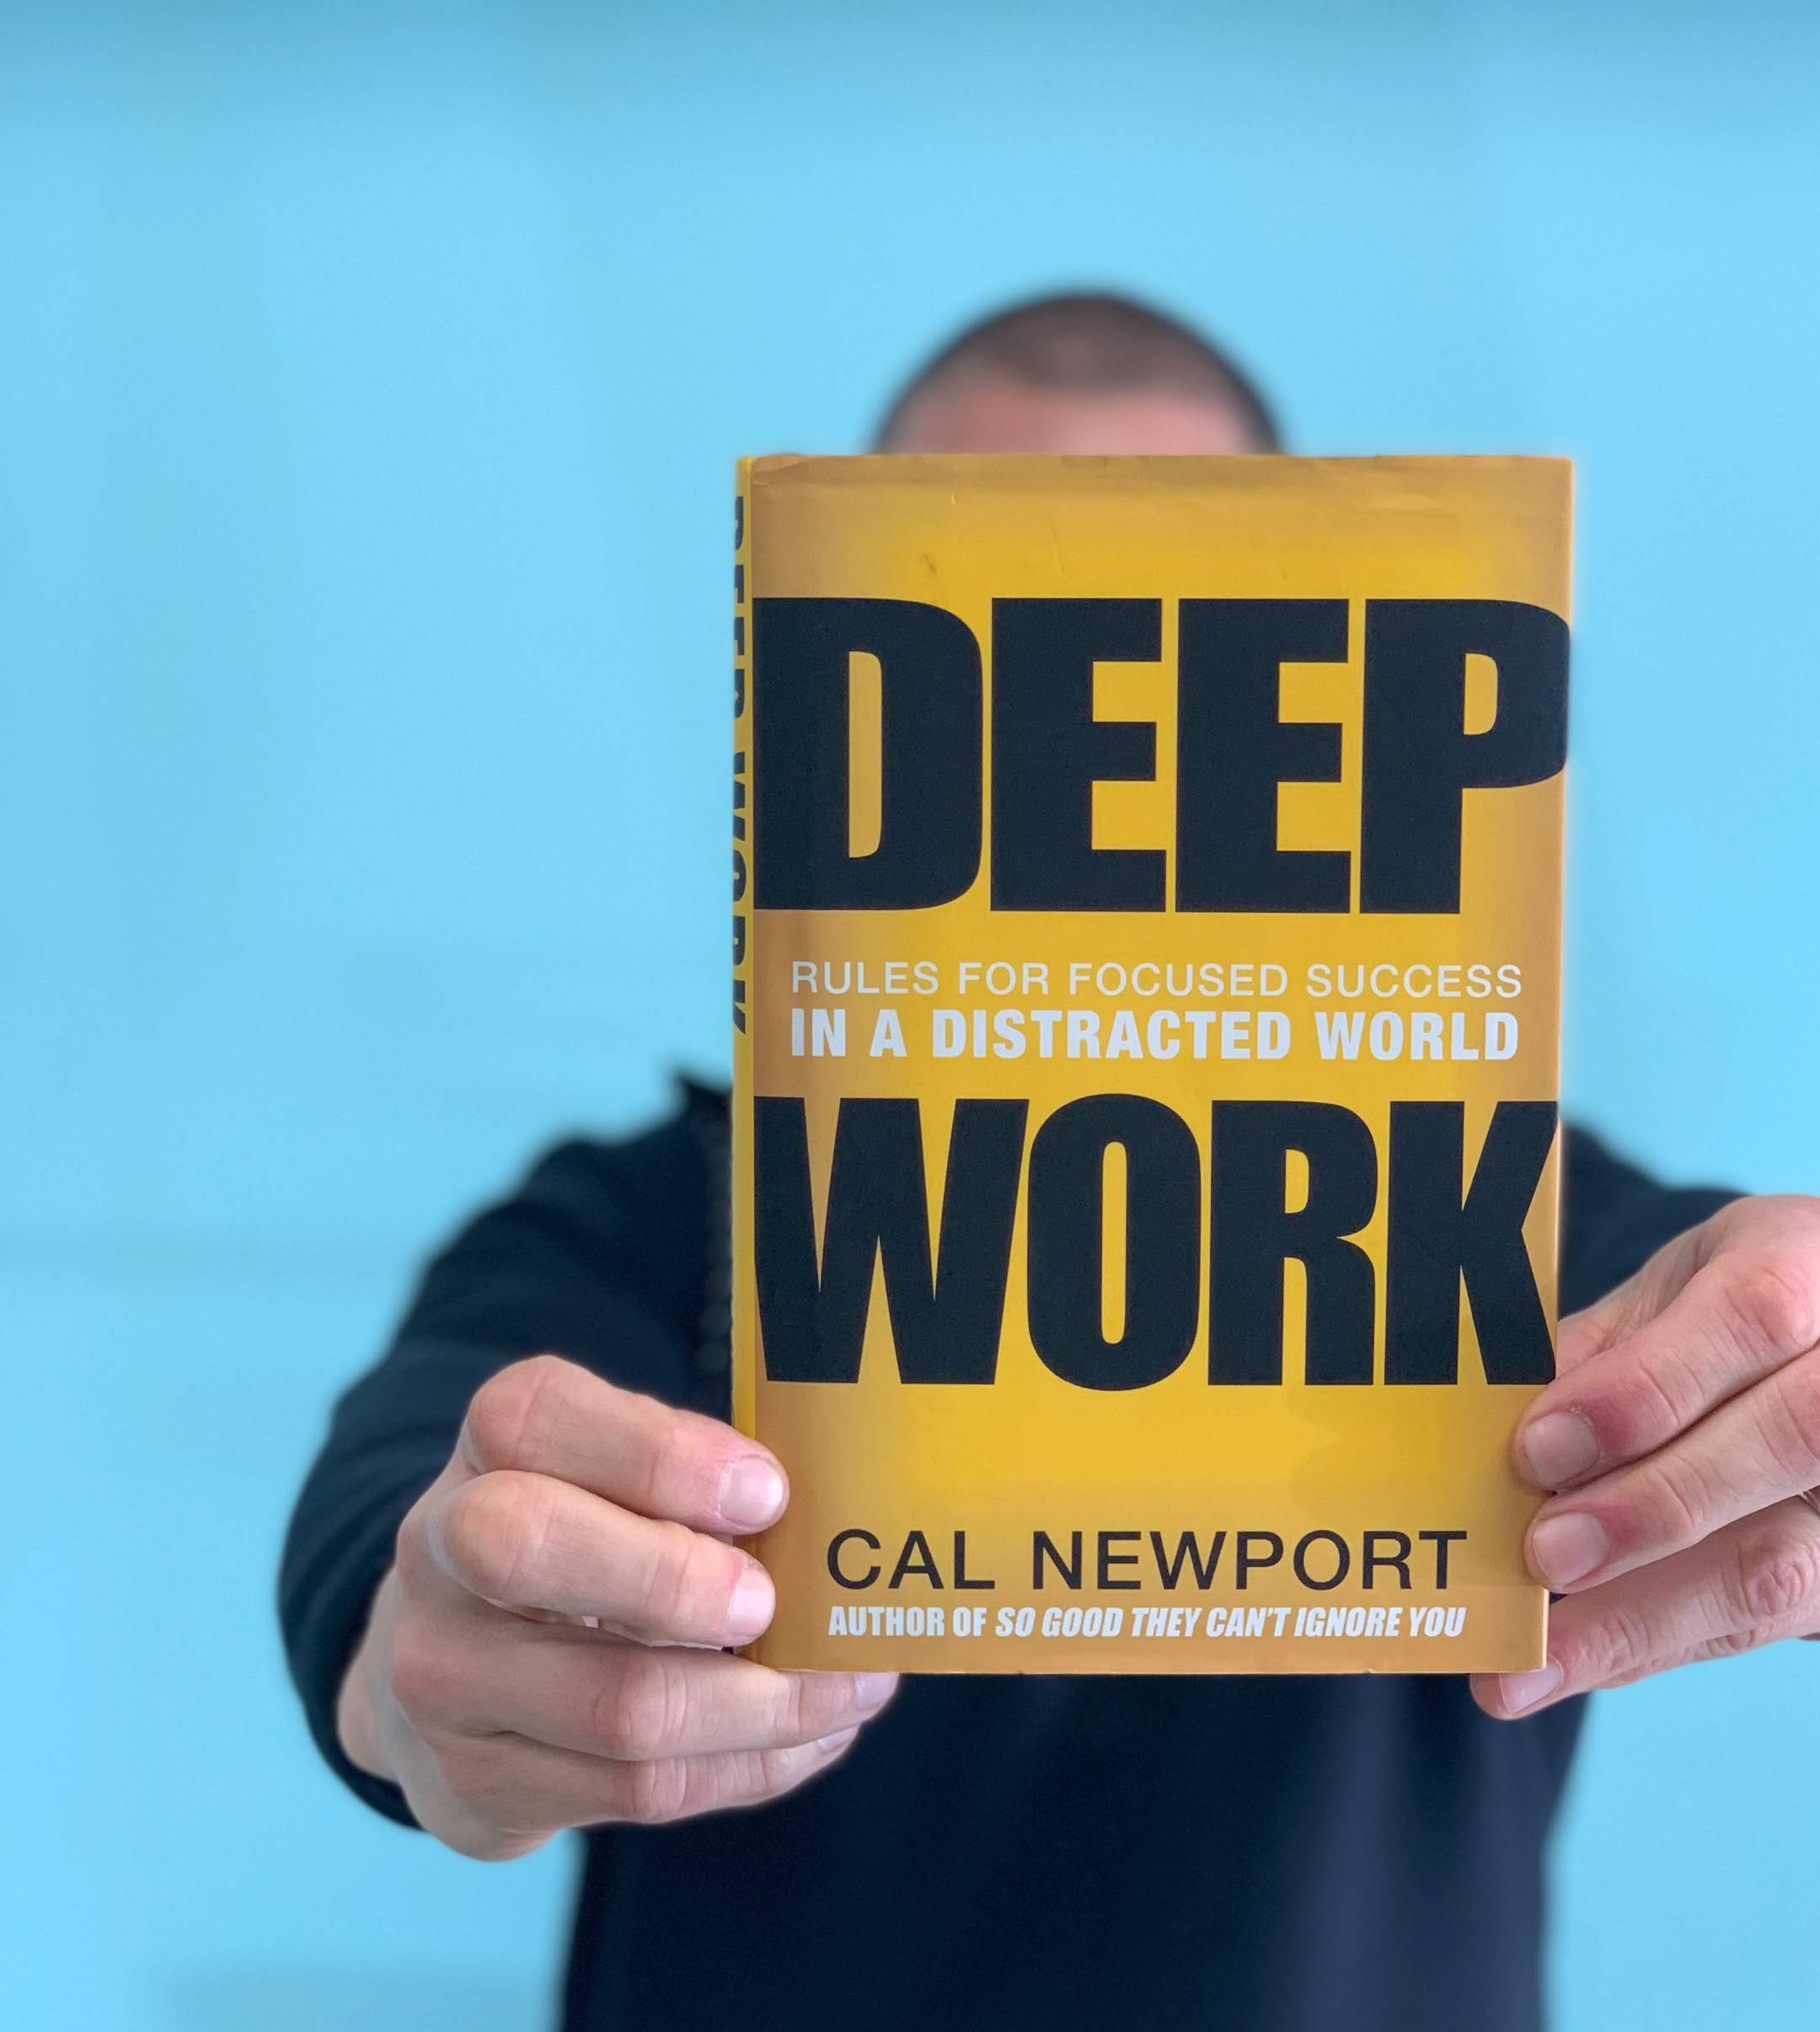 - Deep Work by Cal NewportThis book, in addition to Digital Minimalism, these are two of the most influential books I've read in the last year. Newport illustrates the distractions, seemingly essential to our everyday are not the enemy, but an opportunity to double down on focus, in an effort to delve into the deeper marrow of our work. While busy-ness has been construed for business as usual, Newport reminds us that our most important work requires our most cognitive energy. He provides a regimen for cultivating this skill and mastering our mind to regain control and become prolific once again. I highly recommend this book for anyone needing the mental space to tackle big ideas, projects, and work.